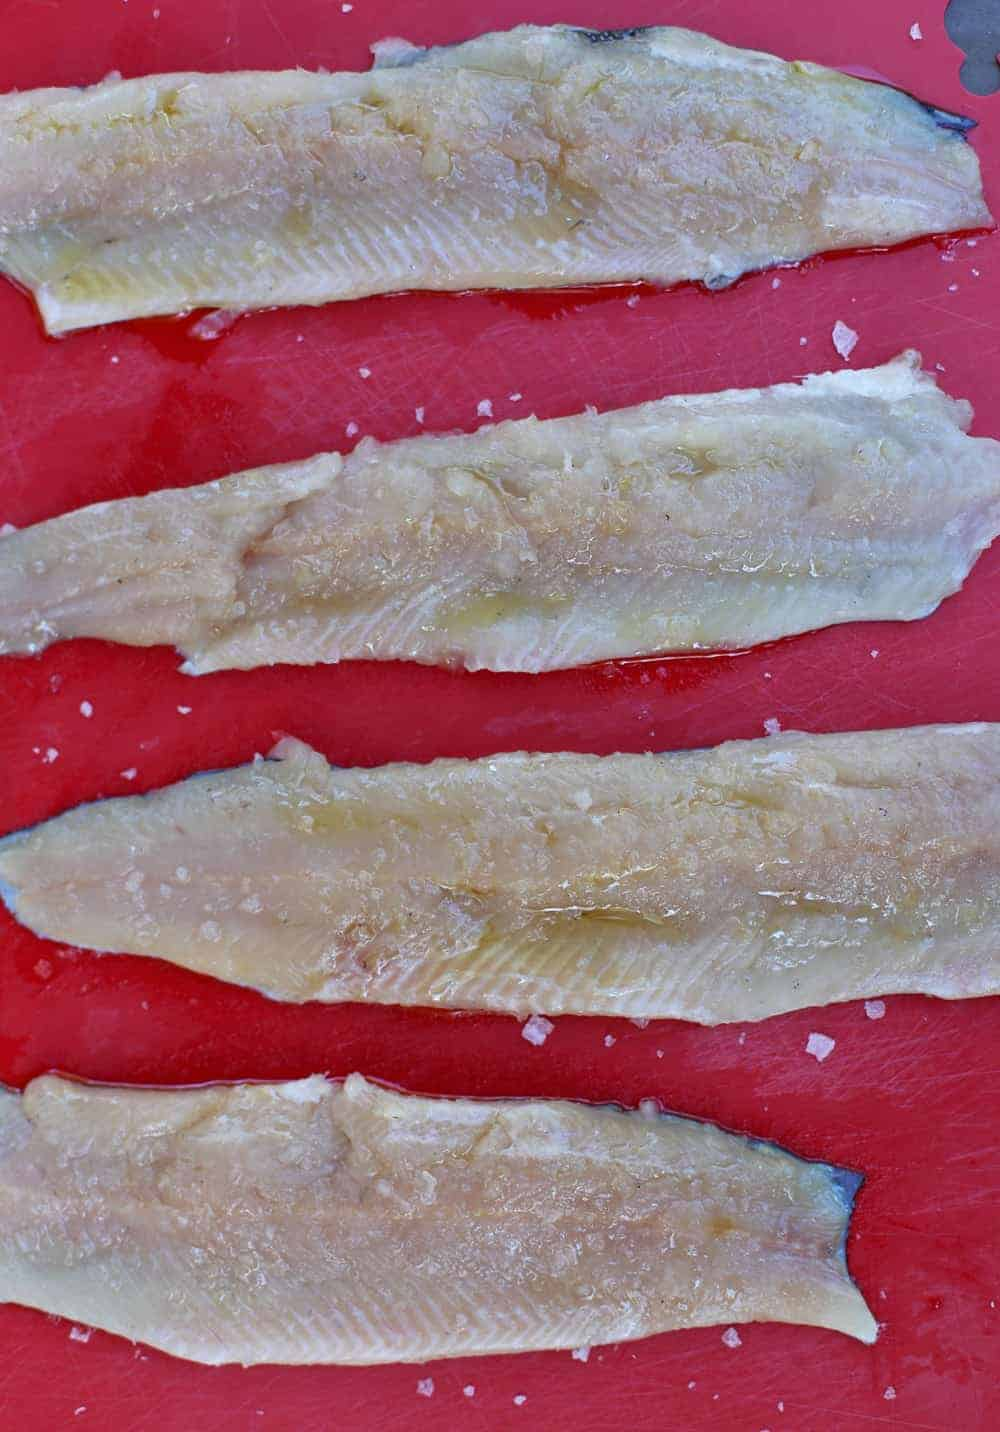 How to fillet a whole Trout